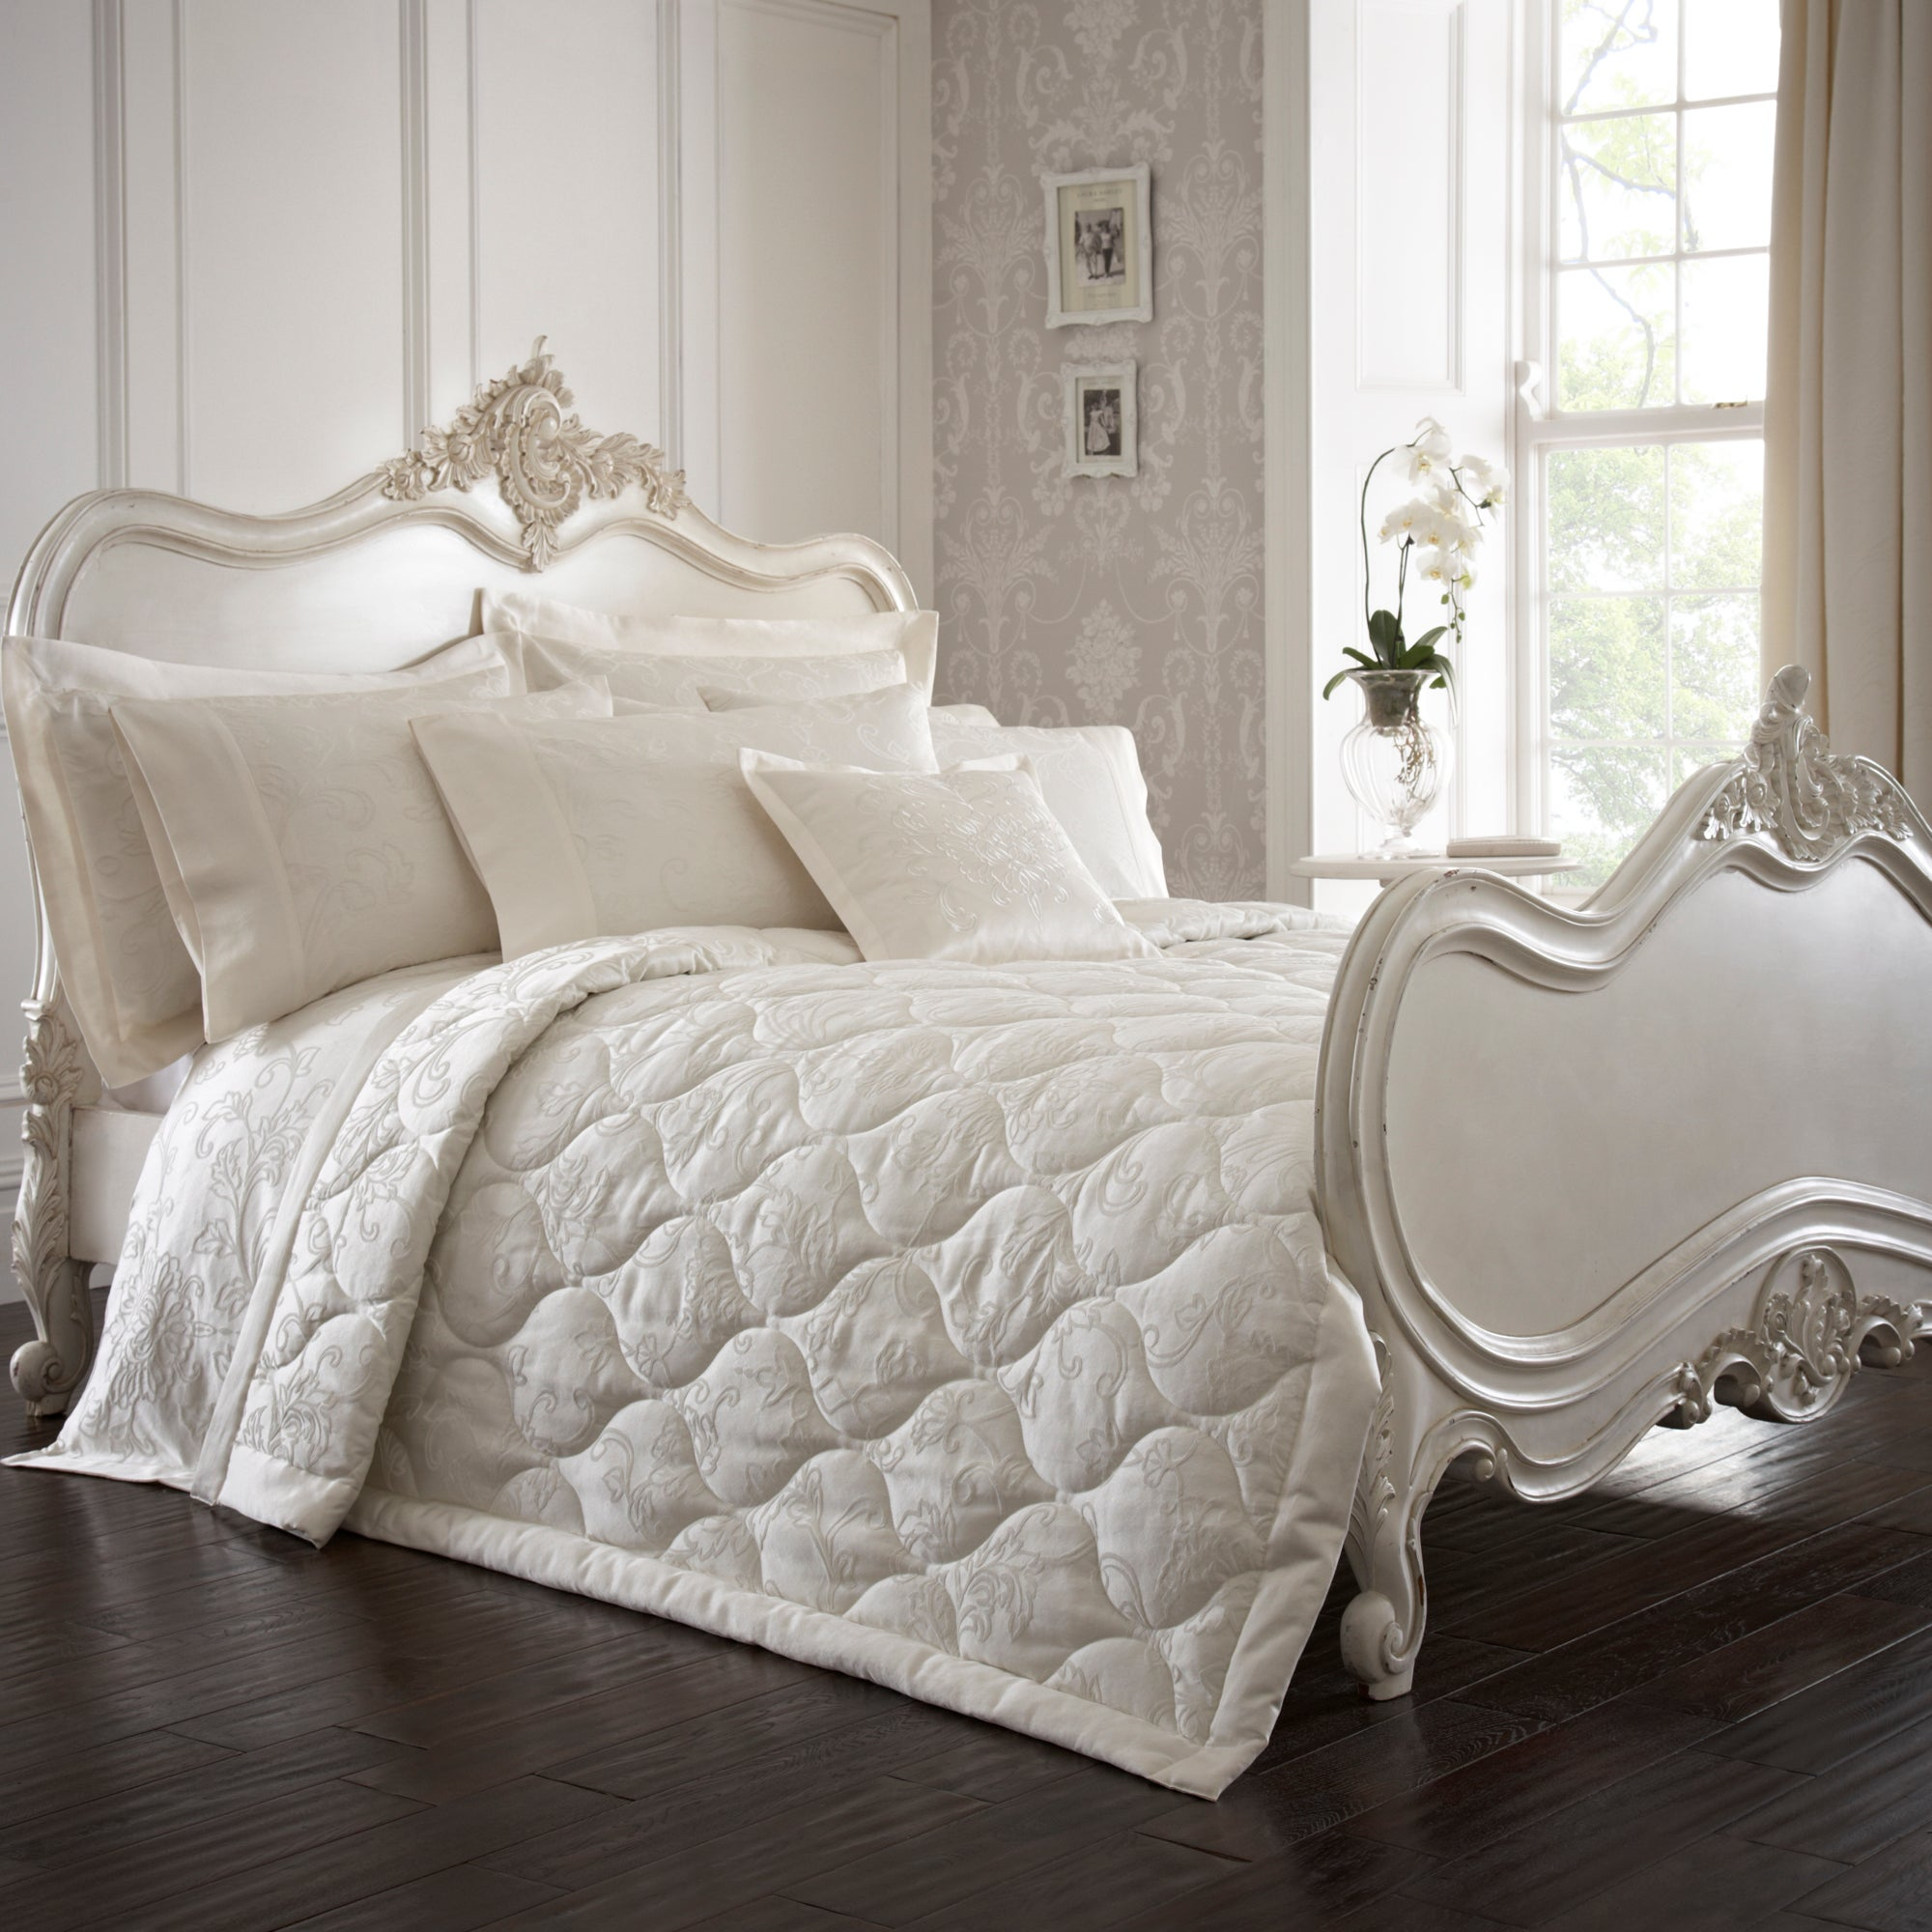 Dorma Cream Pascale Collection Quilted Throw